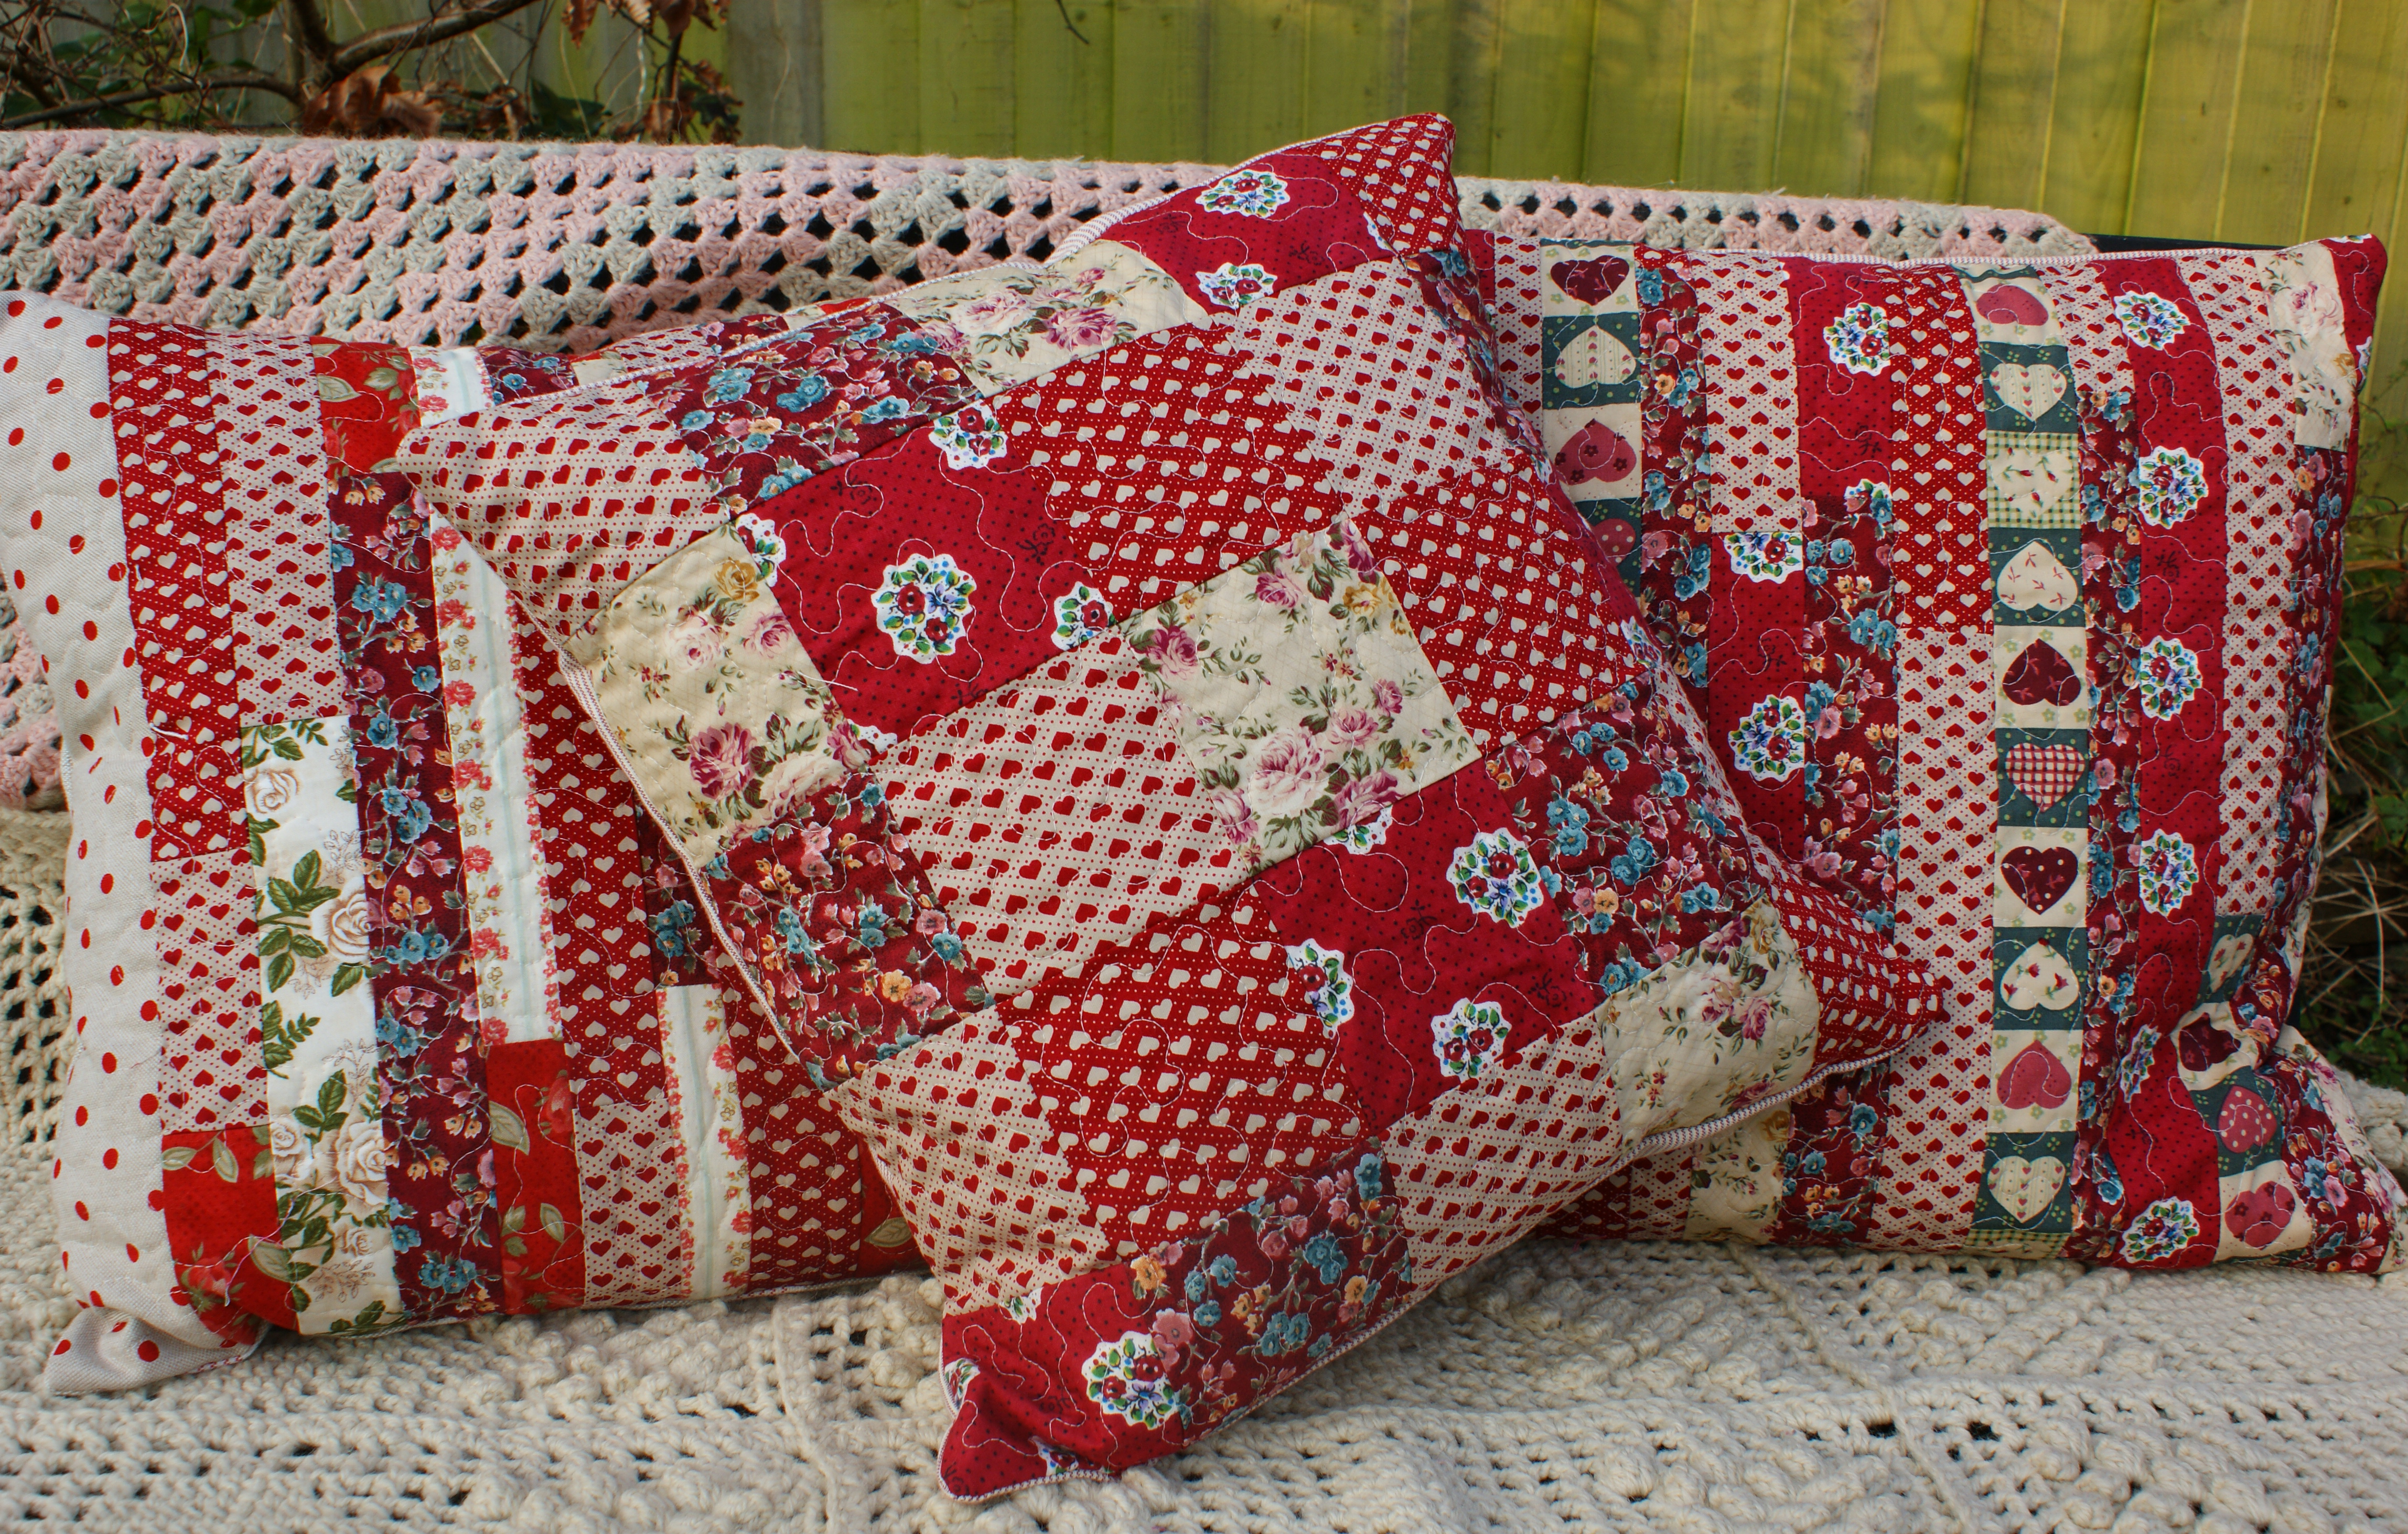 patchwork cushion Adaliza : patchwork trio from adaliza.com size 4592 x 2925 jpeg 9427kB